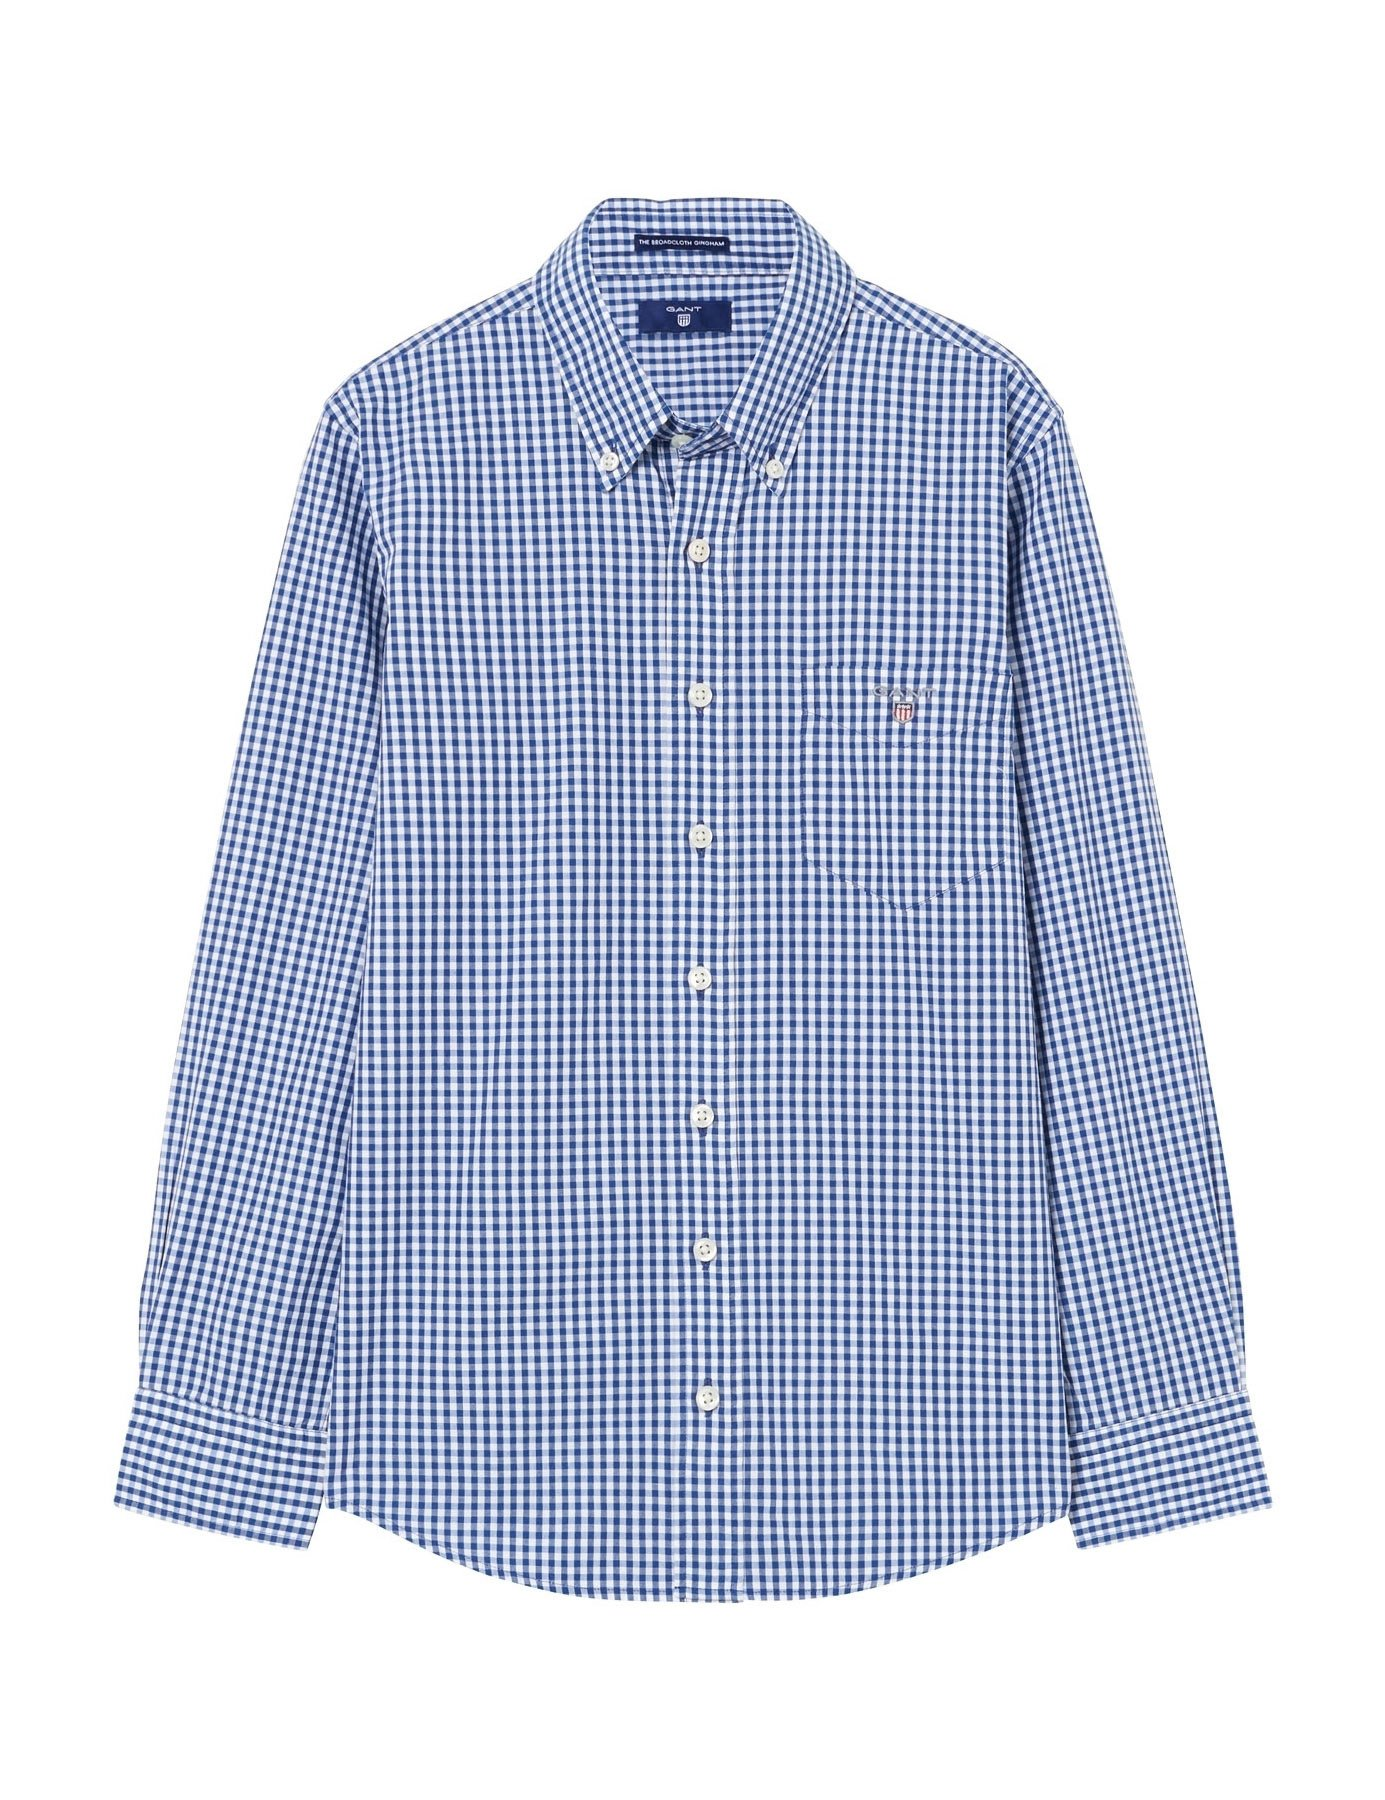 Gant Boy's Blue Checked Shirt in Size 9-10 Years (134-140 cm) Blue